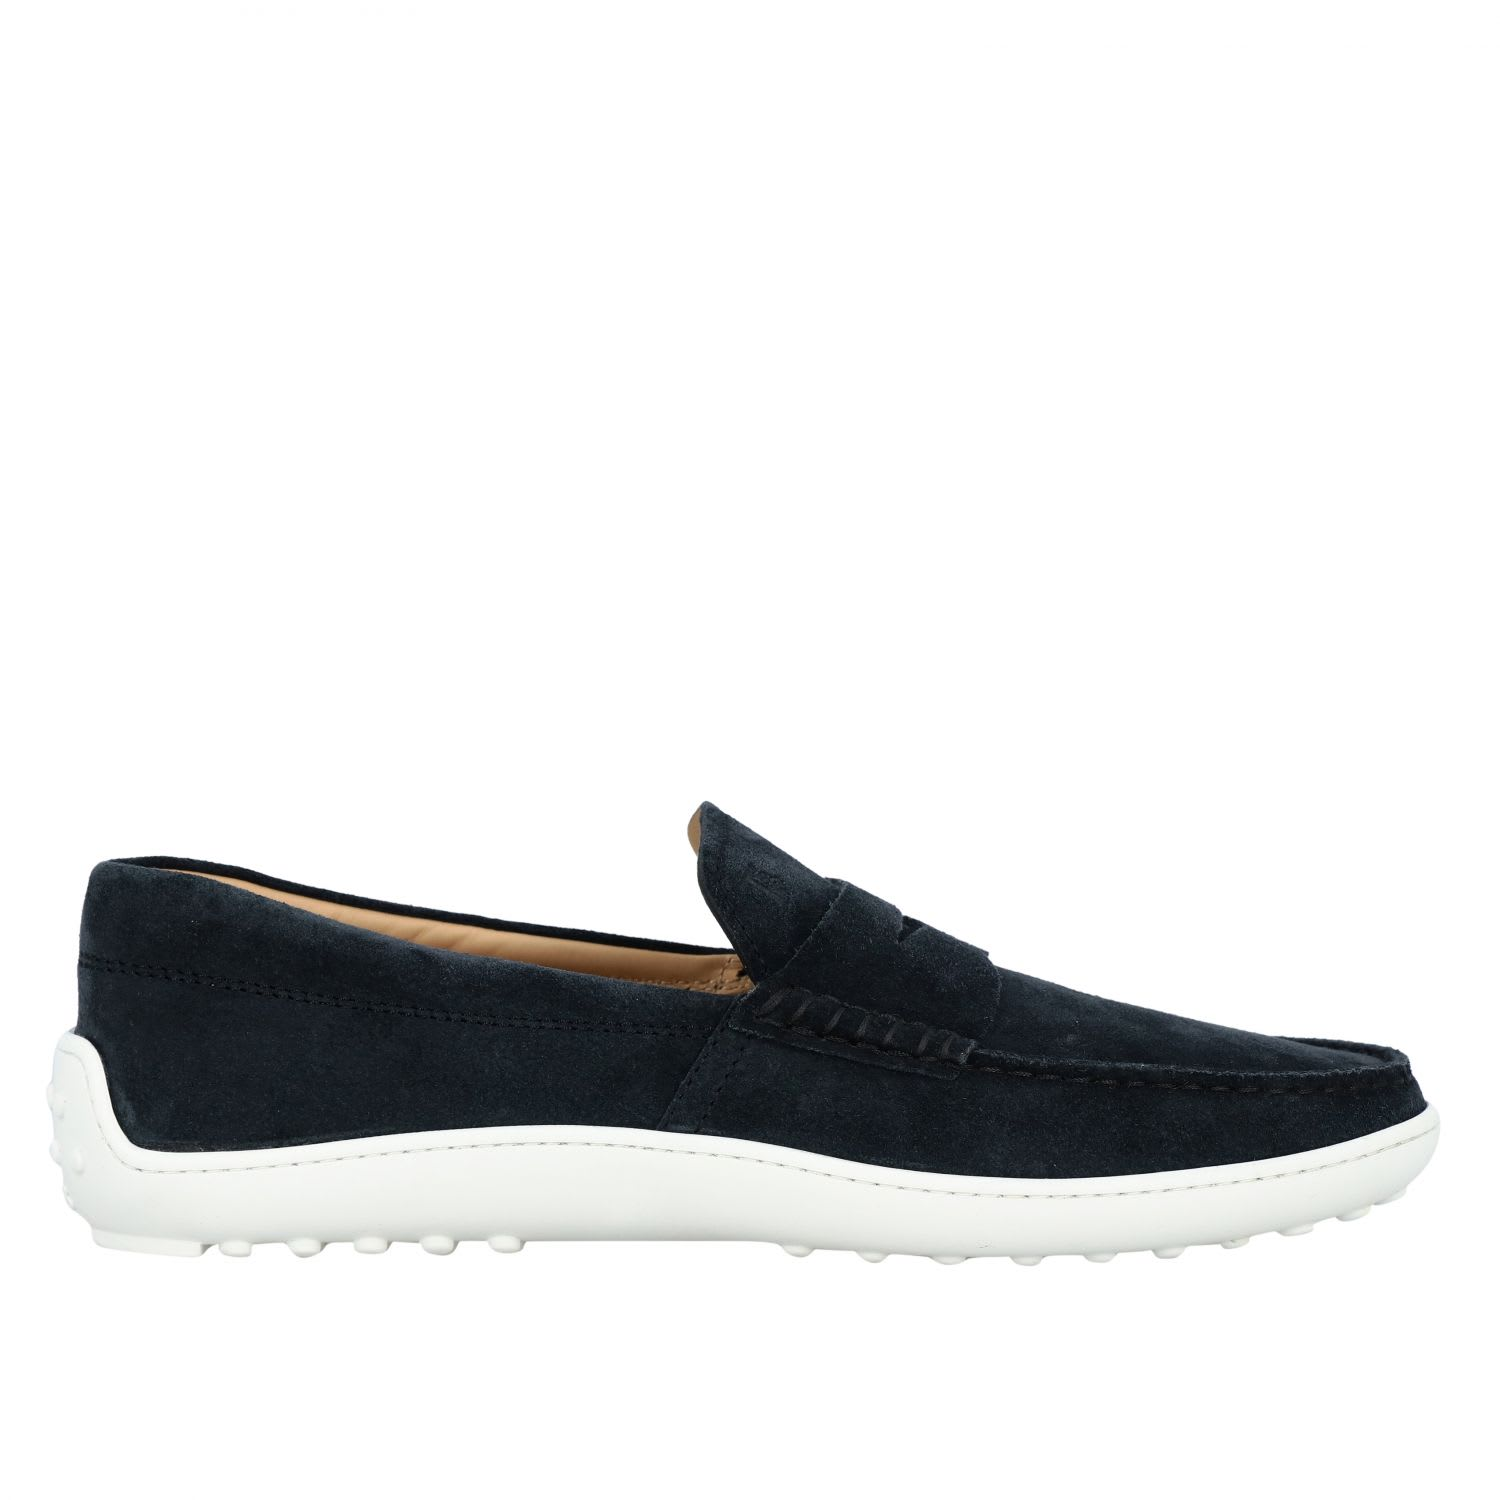 Tods Loafers Tods Slipper Sneakers In Suede With Rubber Sole